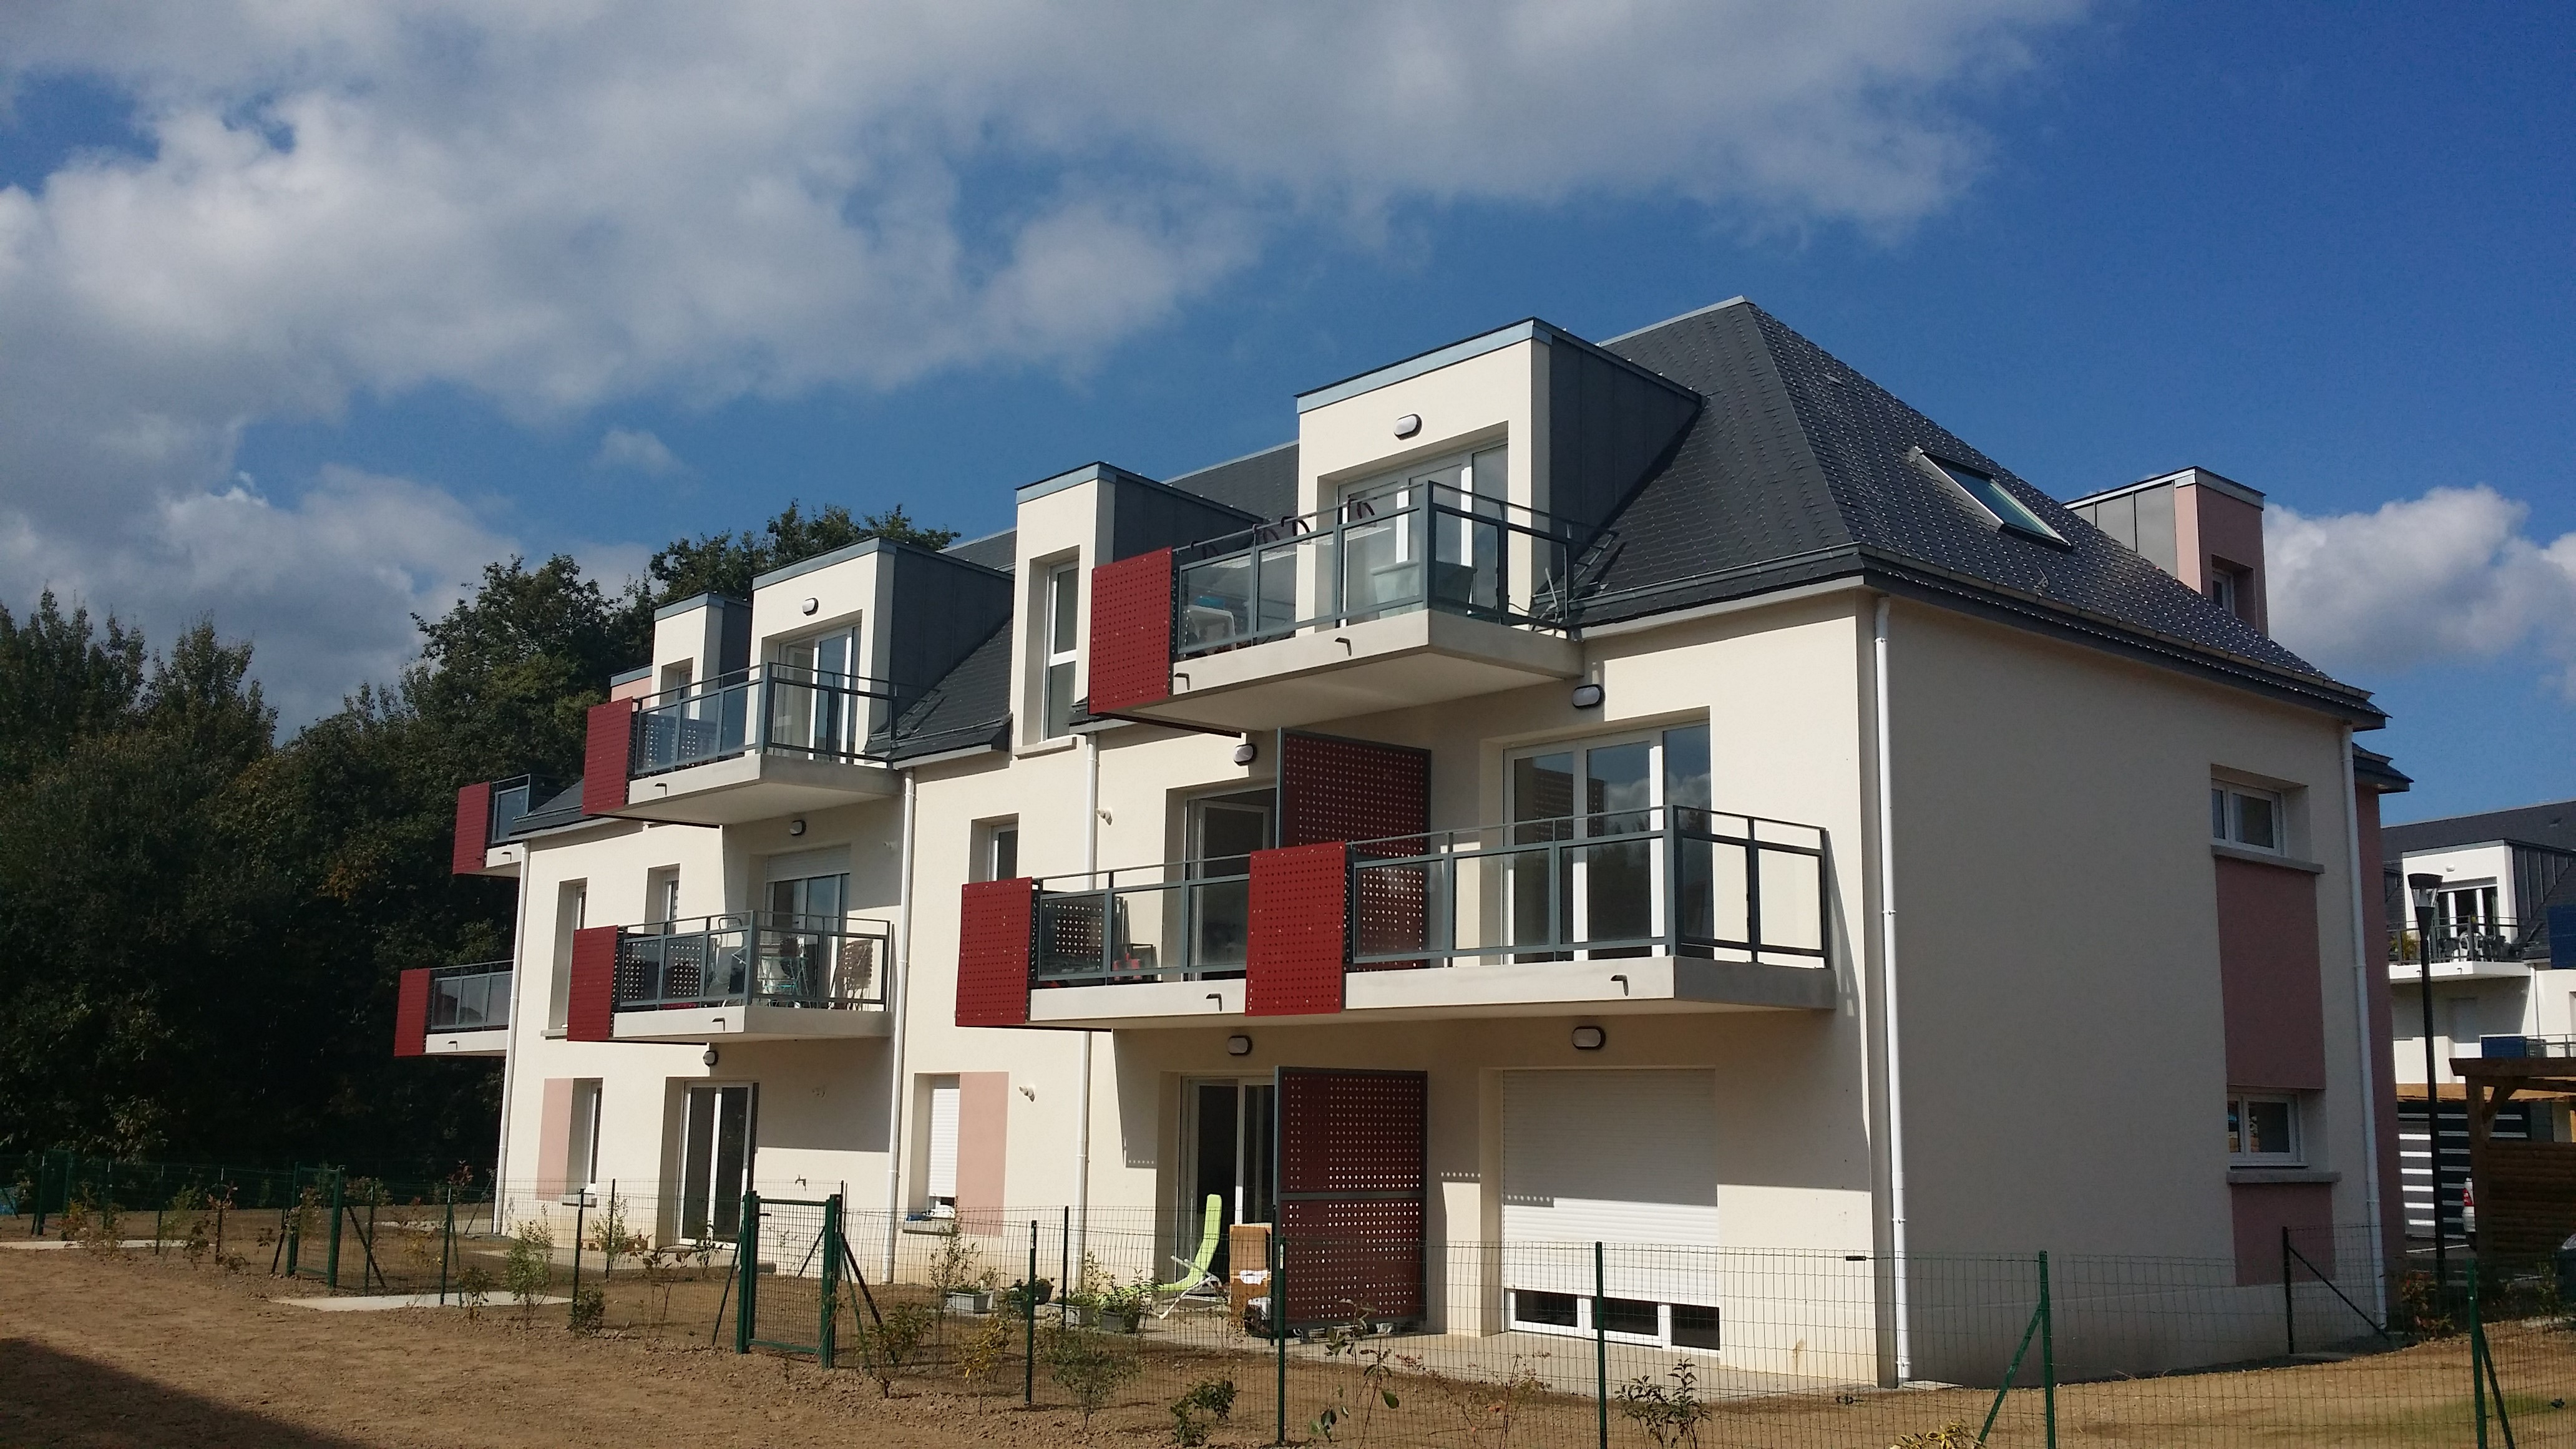 13 Logements collectifs à Saint Malo